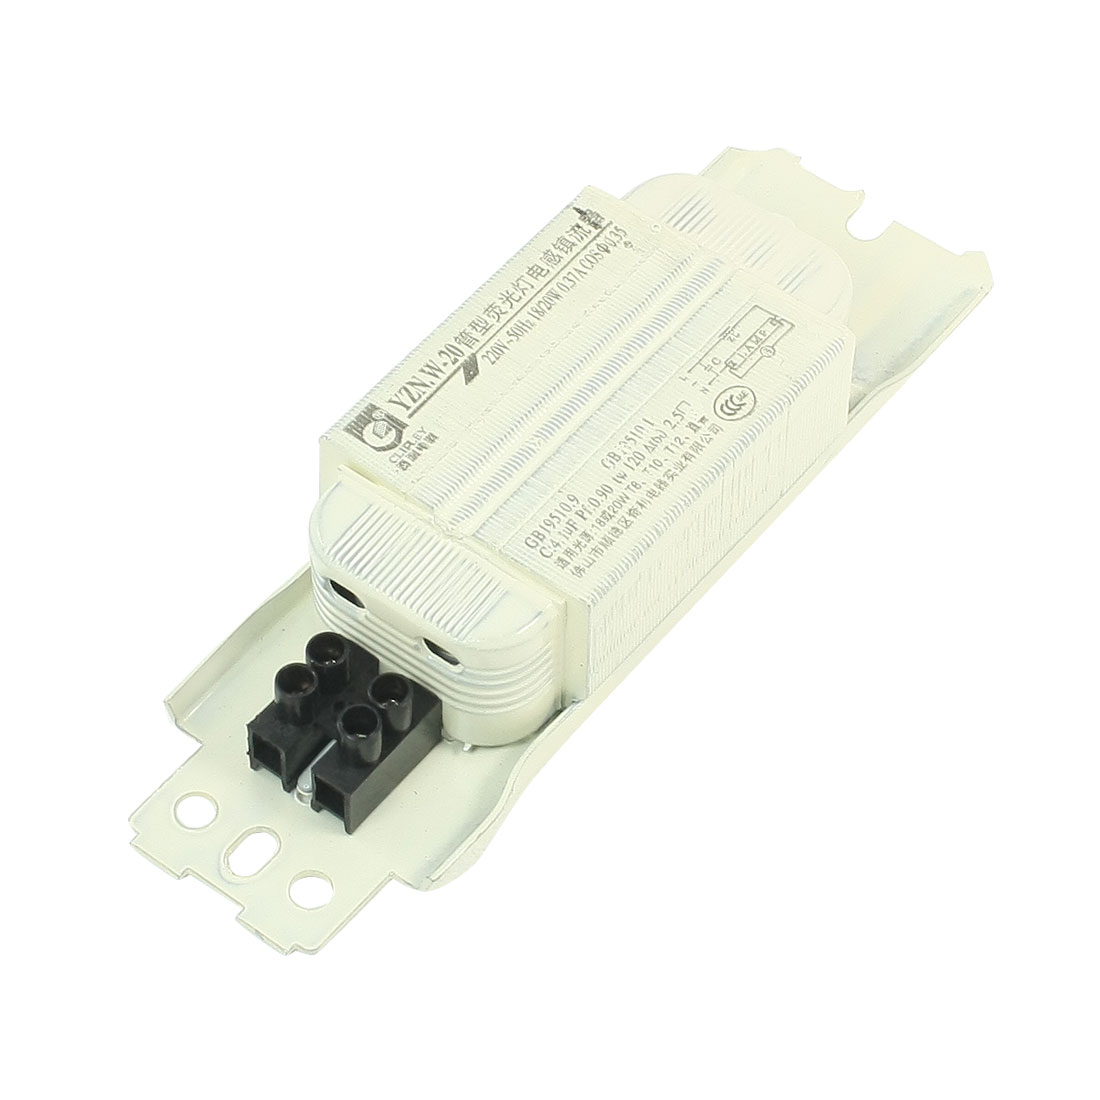 AC 220V 0.37A 20W Power Electronic Ballast for Fluorescent Lamp Light